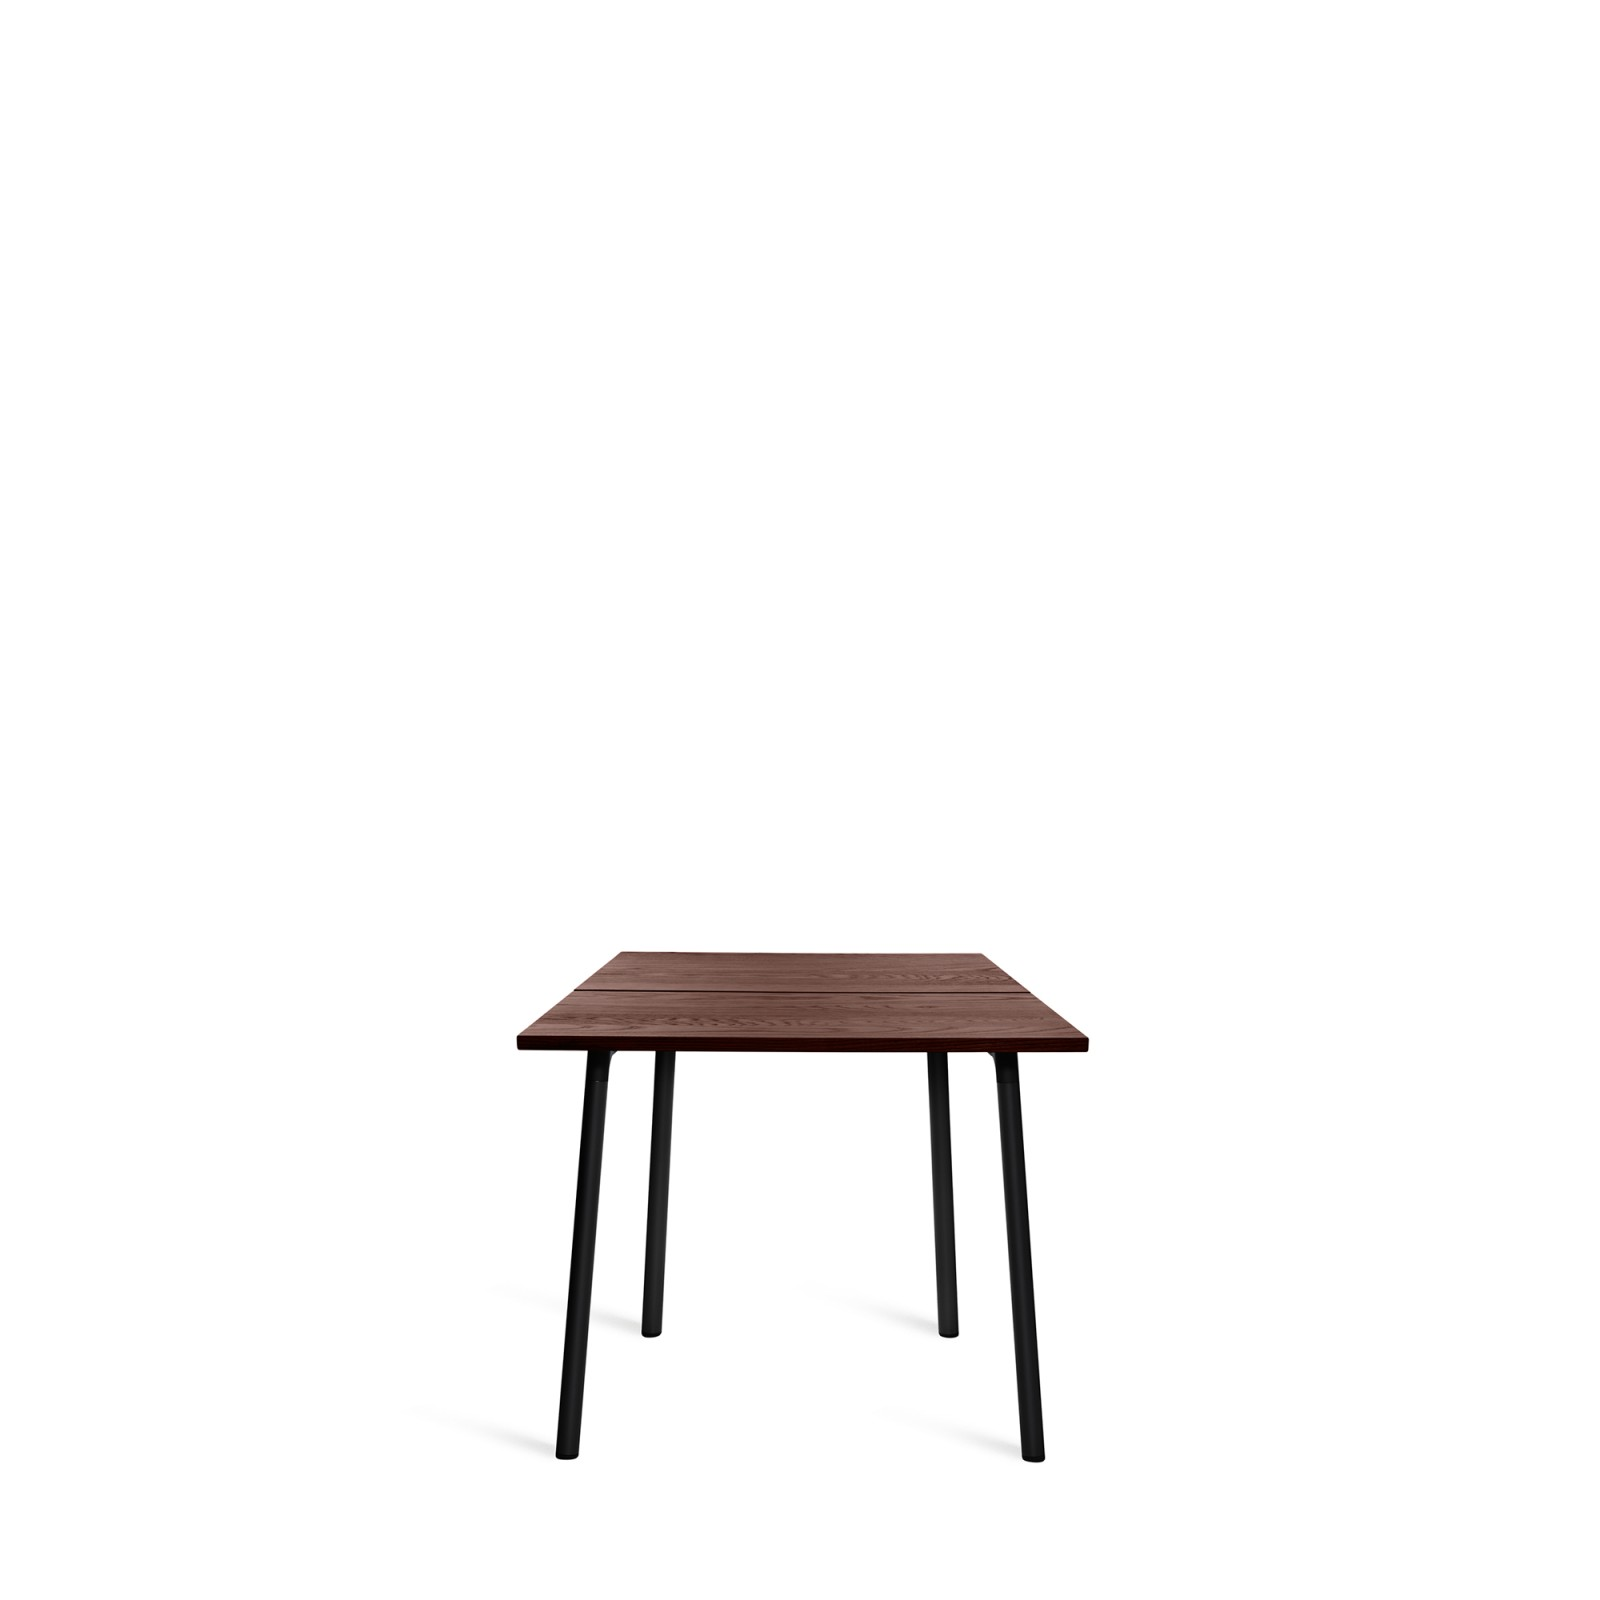 Run Dining Table 83cm, Black, Walnut Top